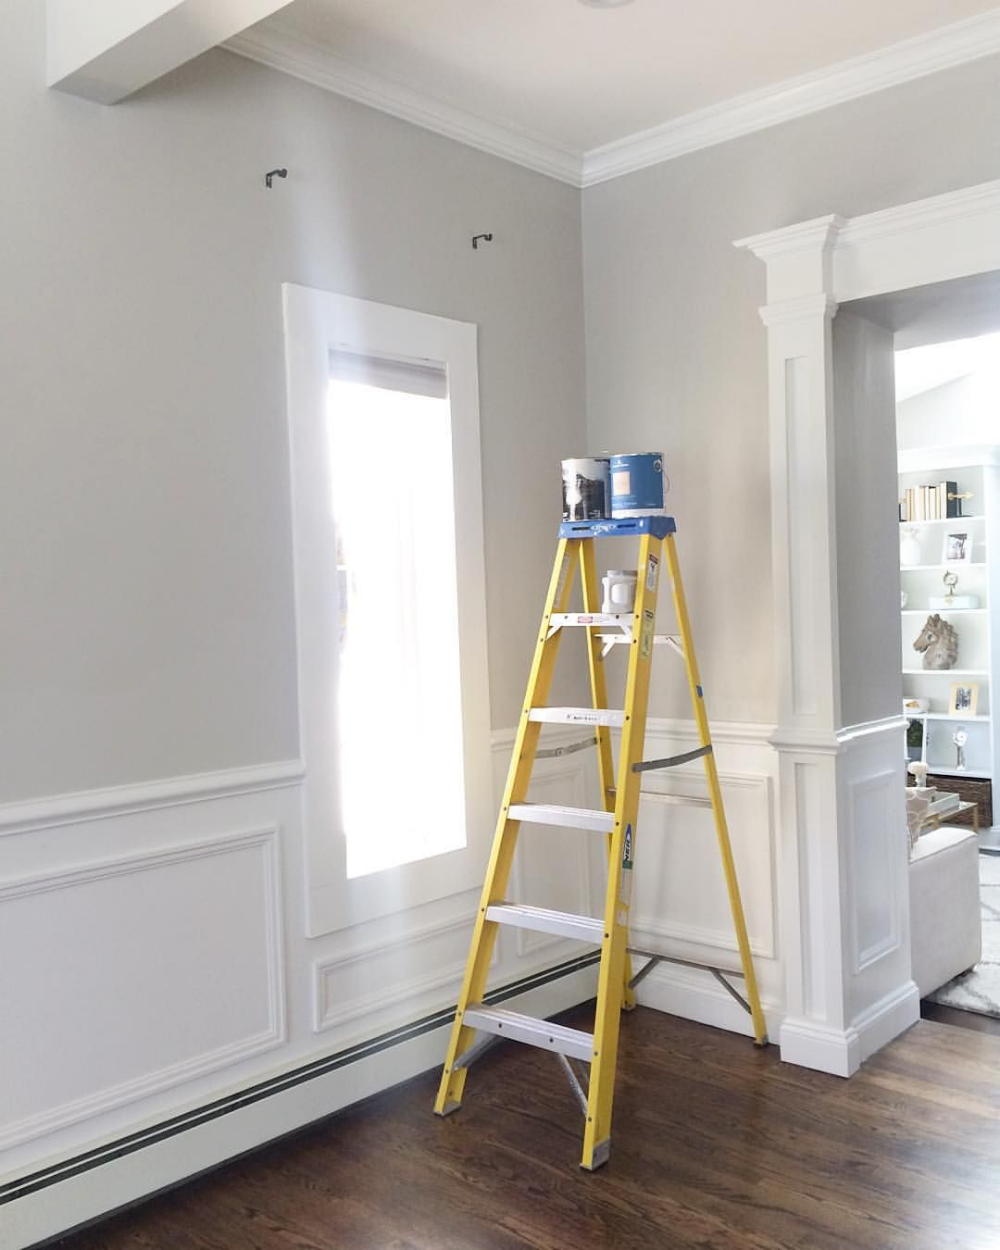 sherwin williams repose gray - Google Search (With images ...